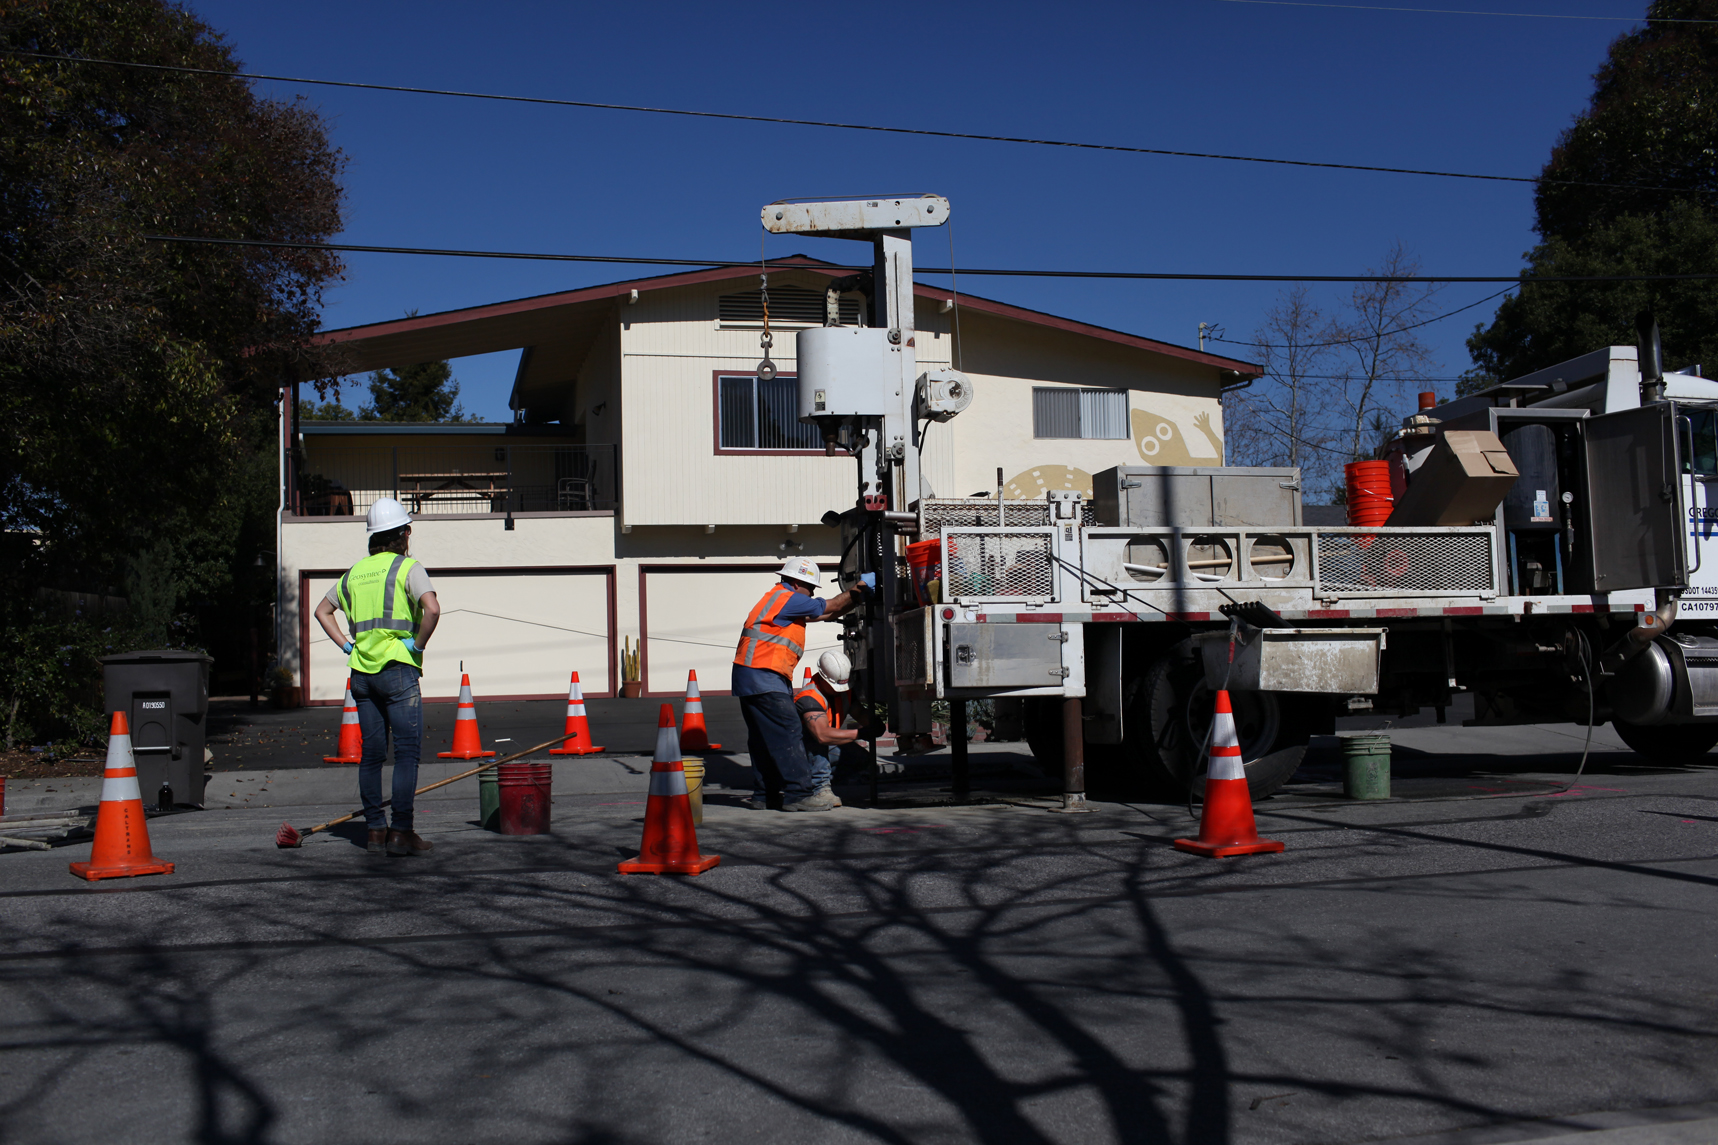 Contract workers drill 36 feet deep to collect water samples for TCE contamination testing, in front of an apartment complex located at 250 Evandale Avenue, Feb. 14, 2013. Currently, landlords are not legally obligated to inform tenants of the toxin levels found in their units. Tenants are not allowed to get free testing by the EPA without landlord consent.